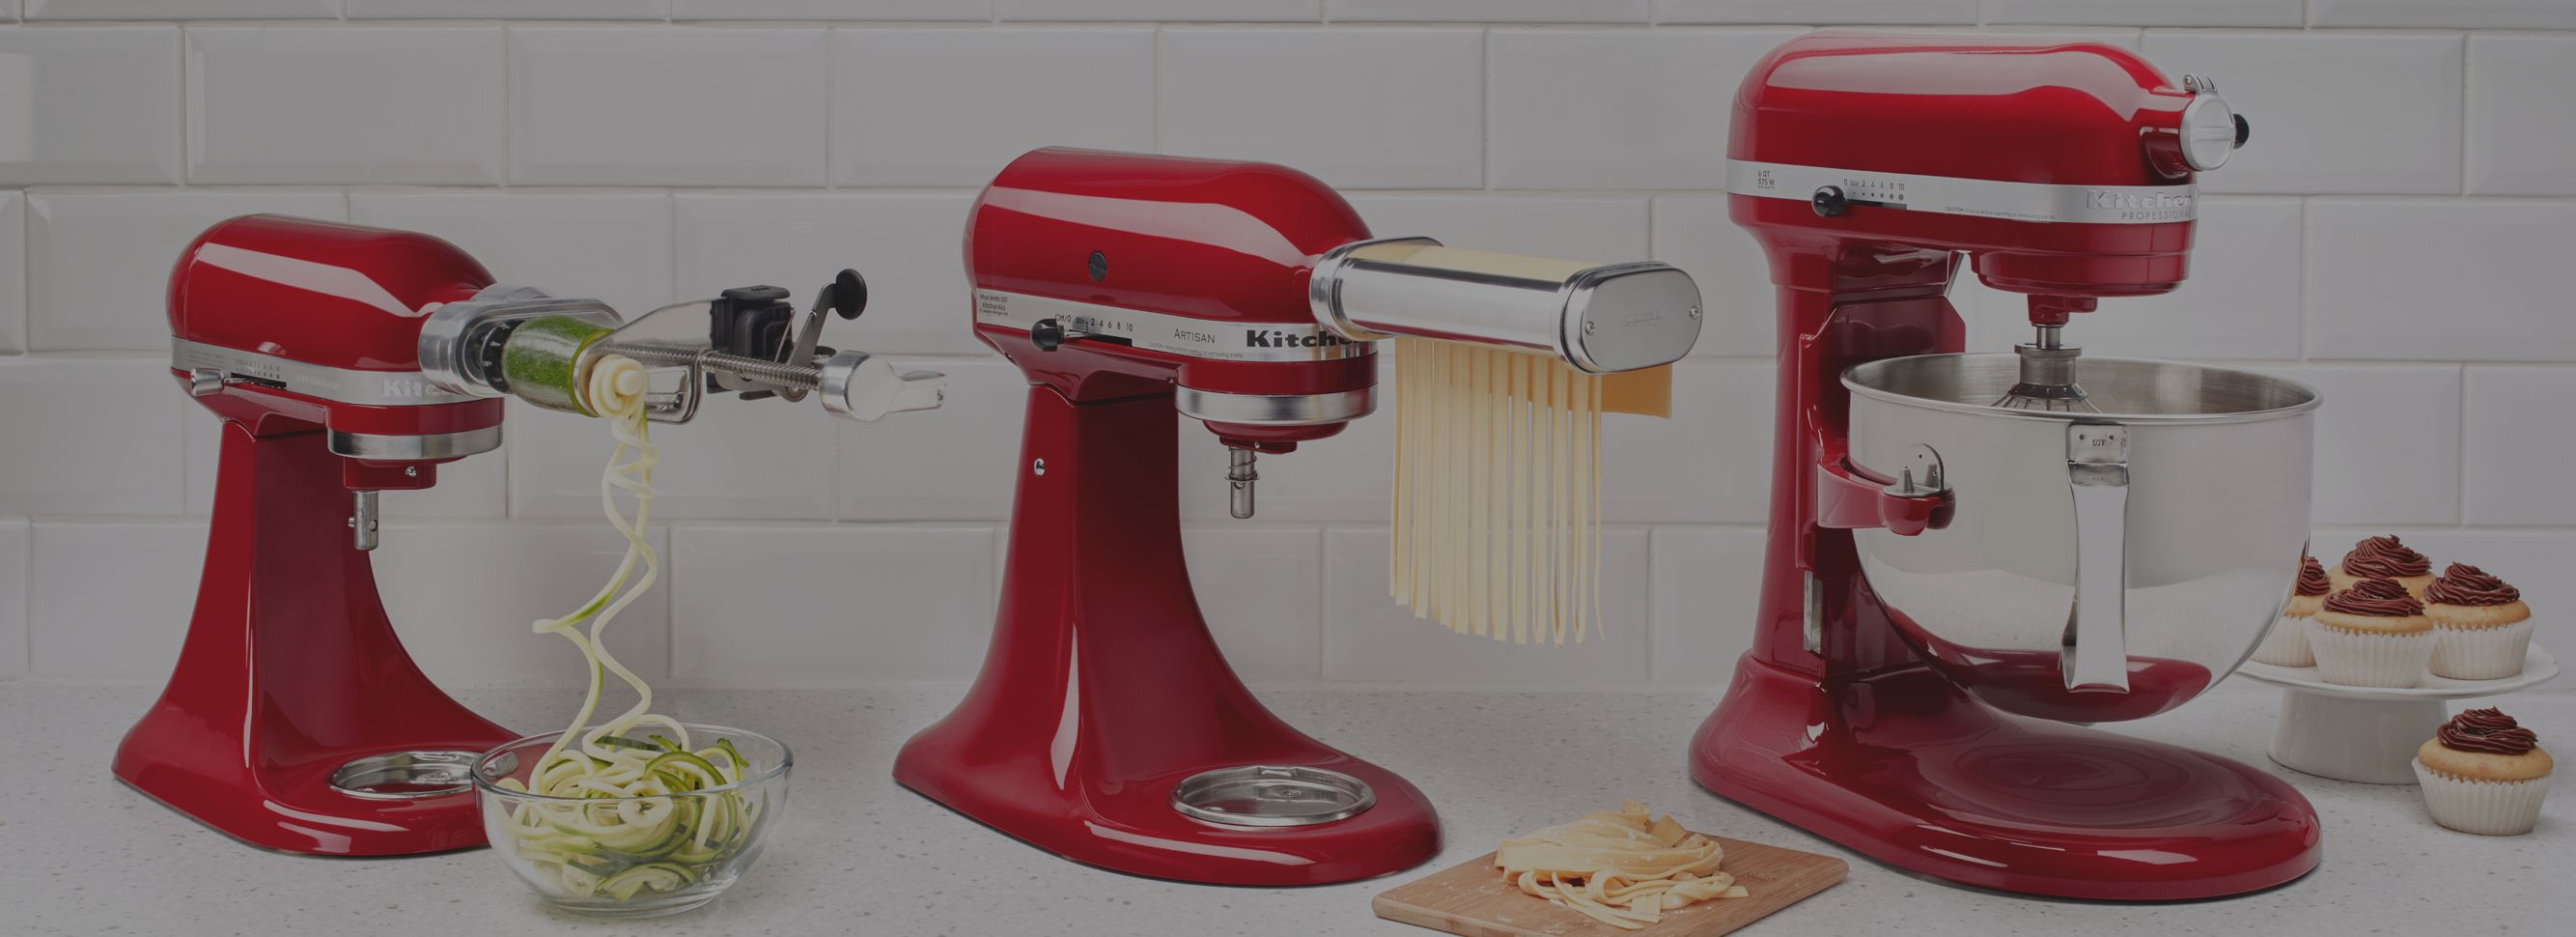 Closeup view of a KitchenAid? stand mixer in action